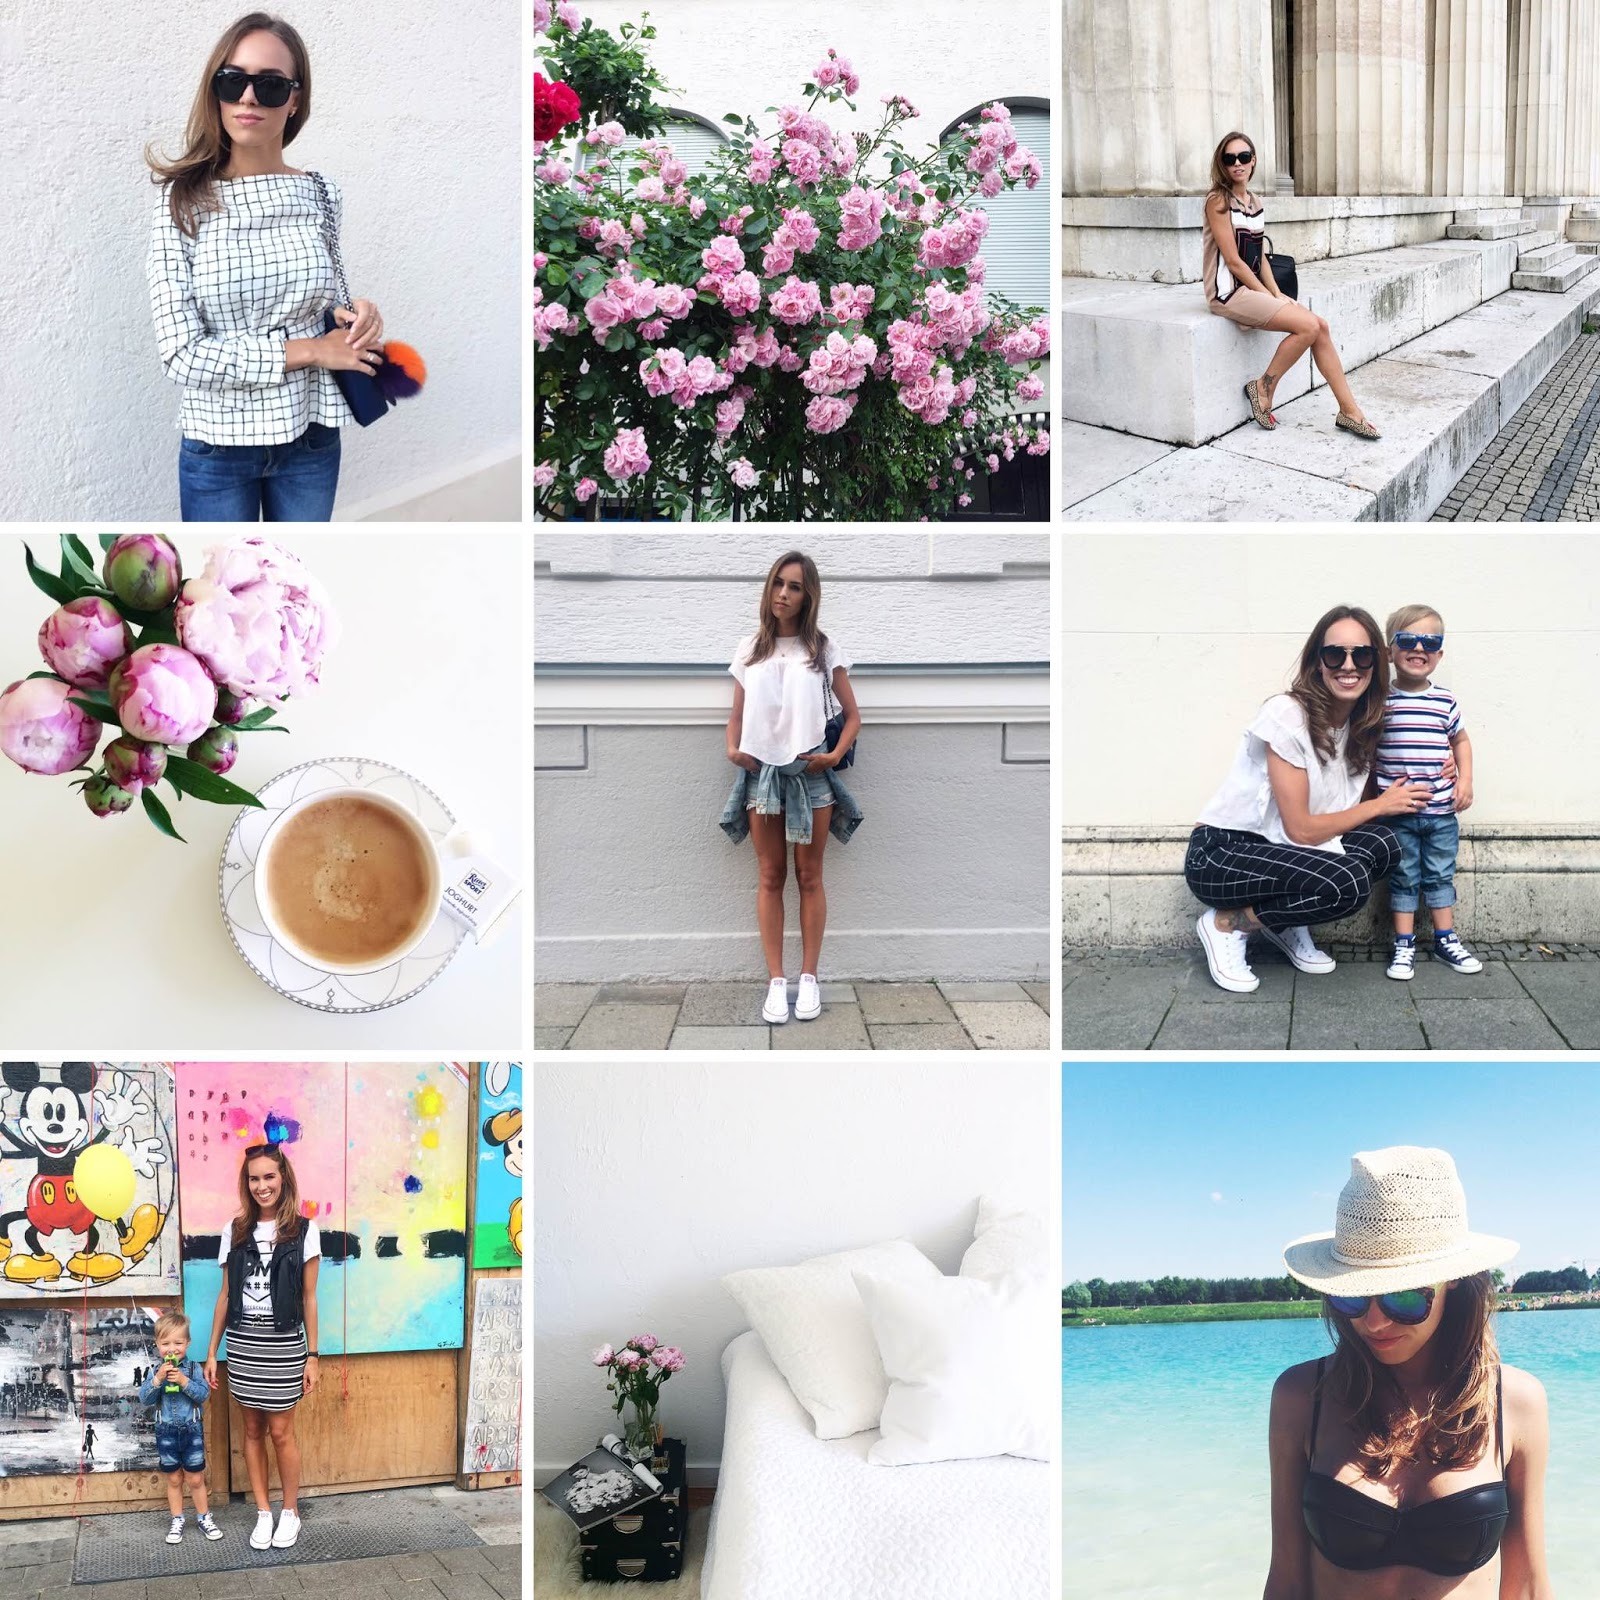 kristjaana mere instagram german munich fashion lifestyle blogger